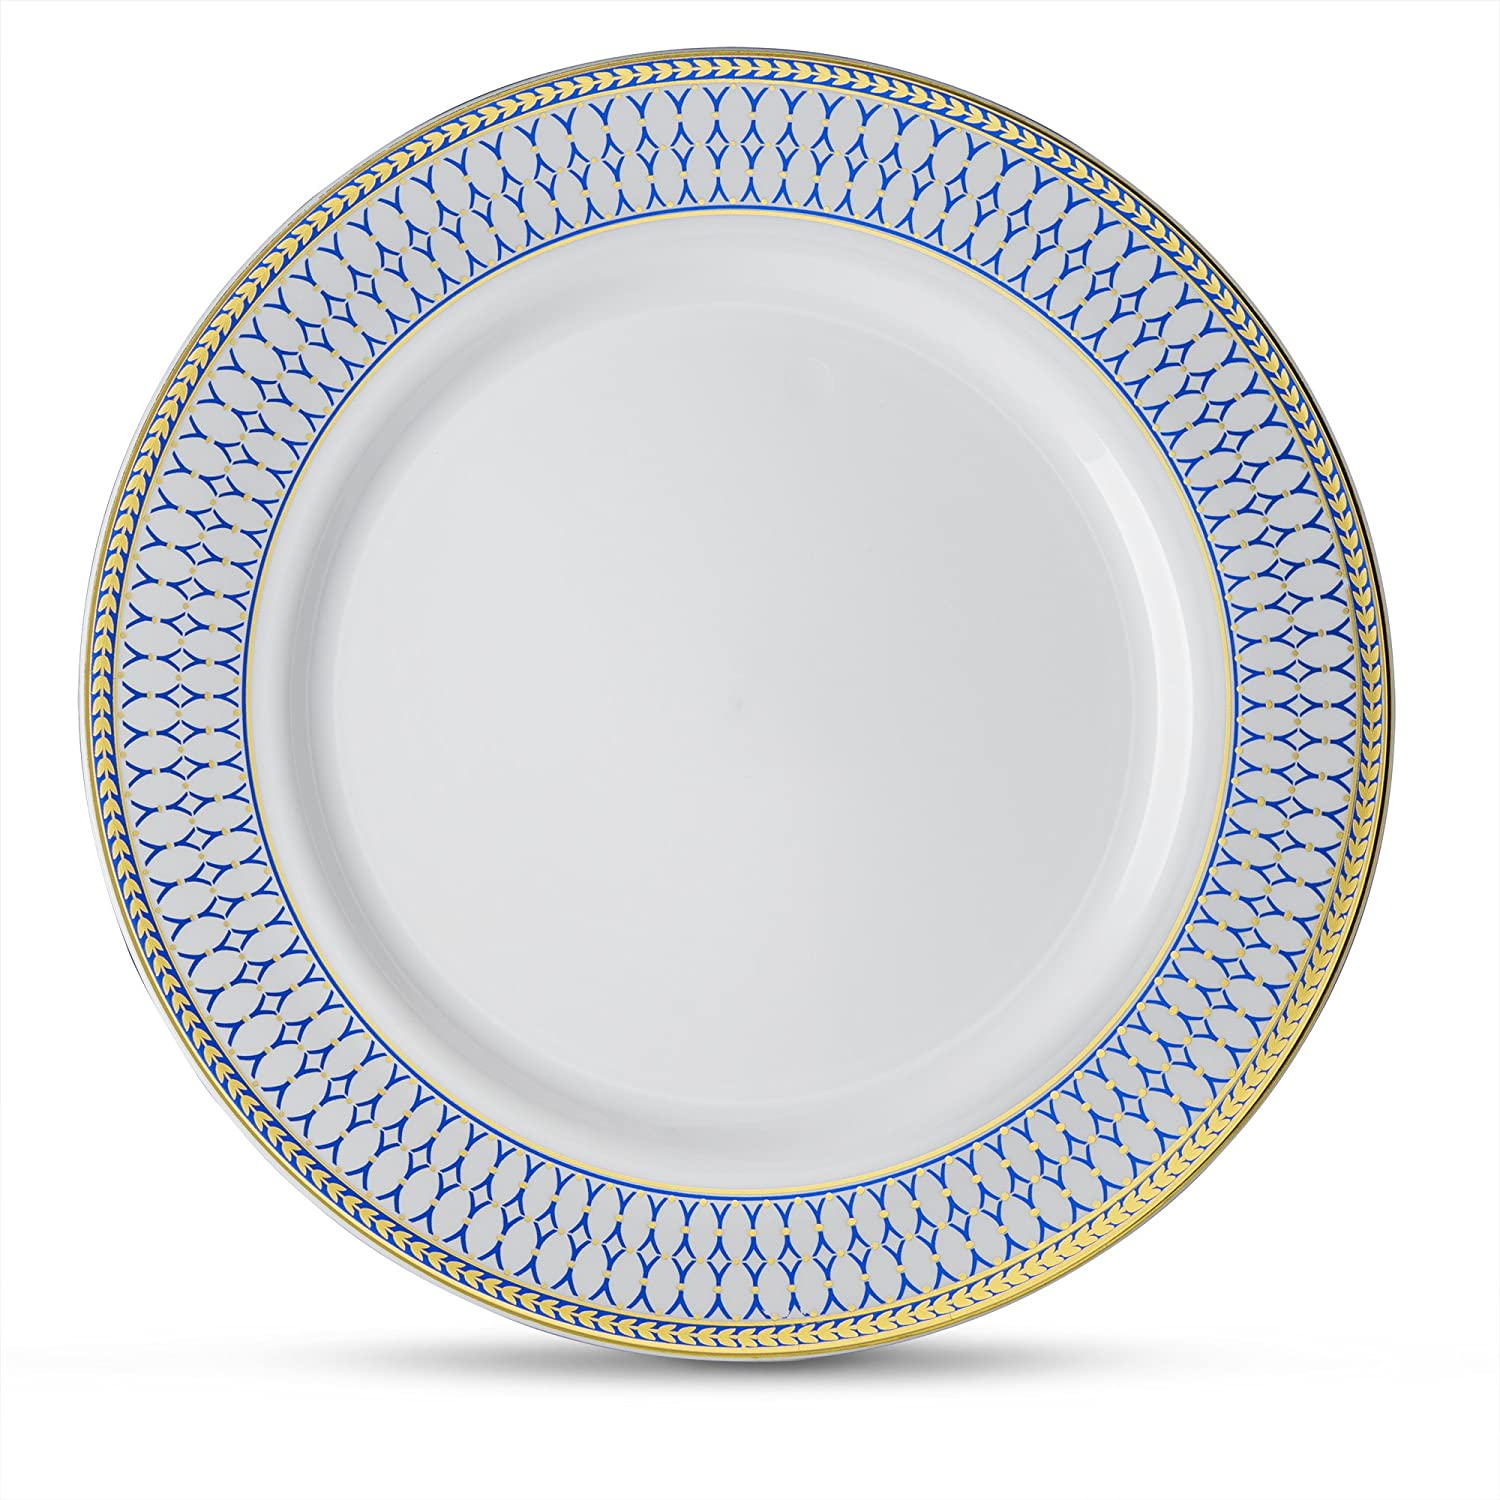 [10 Count - 9 Plates] Laura Stein Designer Tableware Premium Heavyweight Plastic White Lunch Plate With Blue & Gold Border Plastic Party & Wedding Plate Midnight Blue Series Disposable Dishes